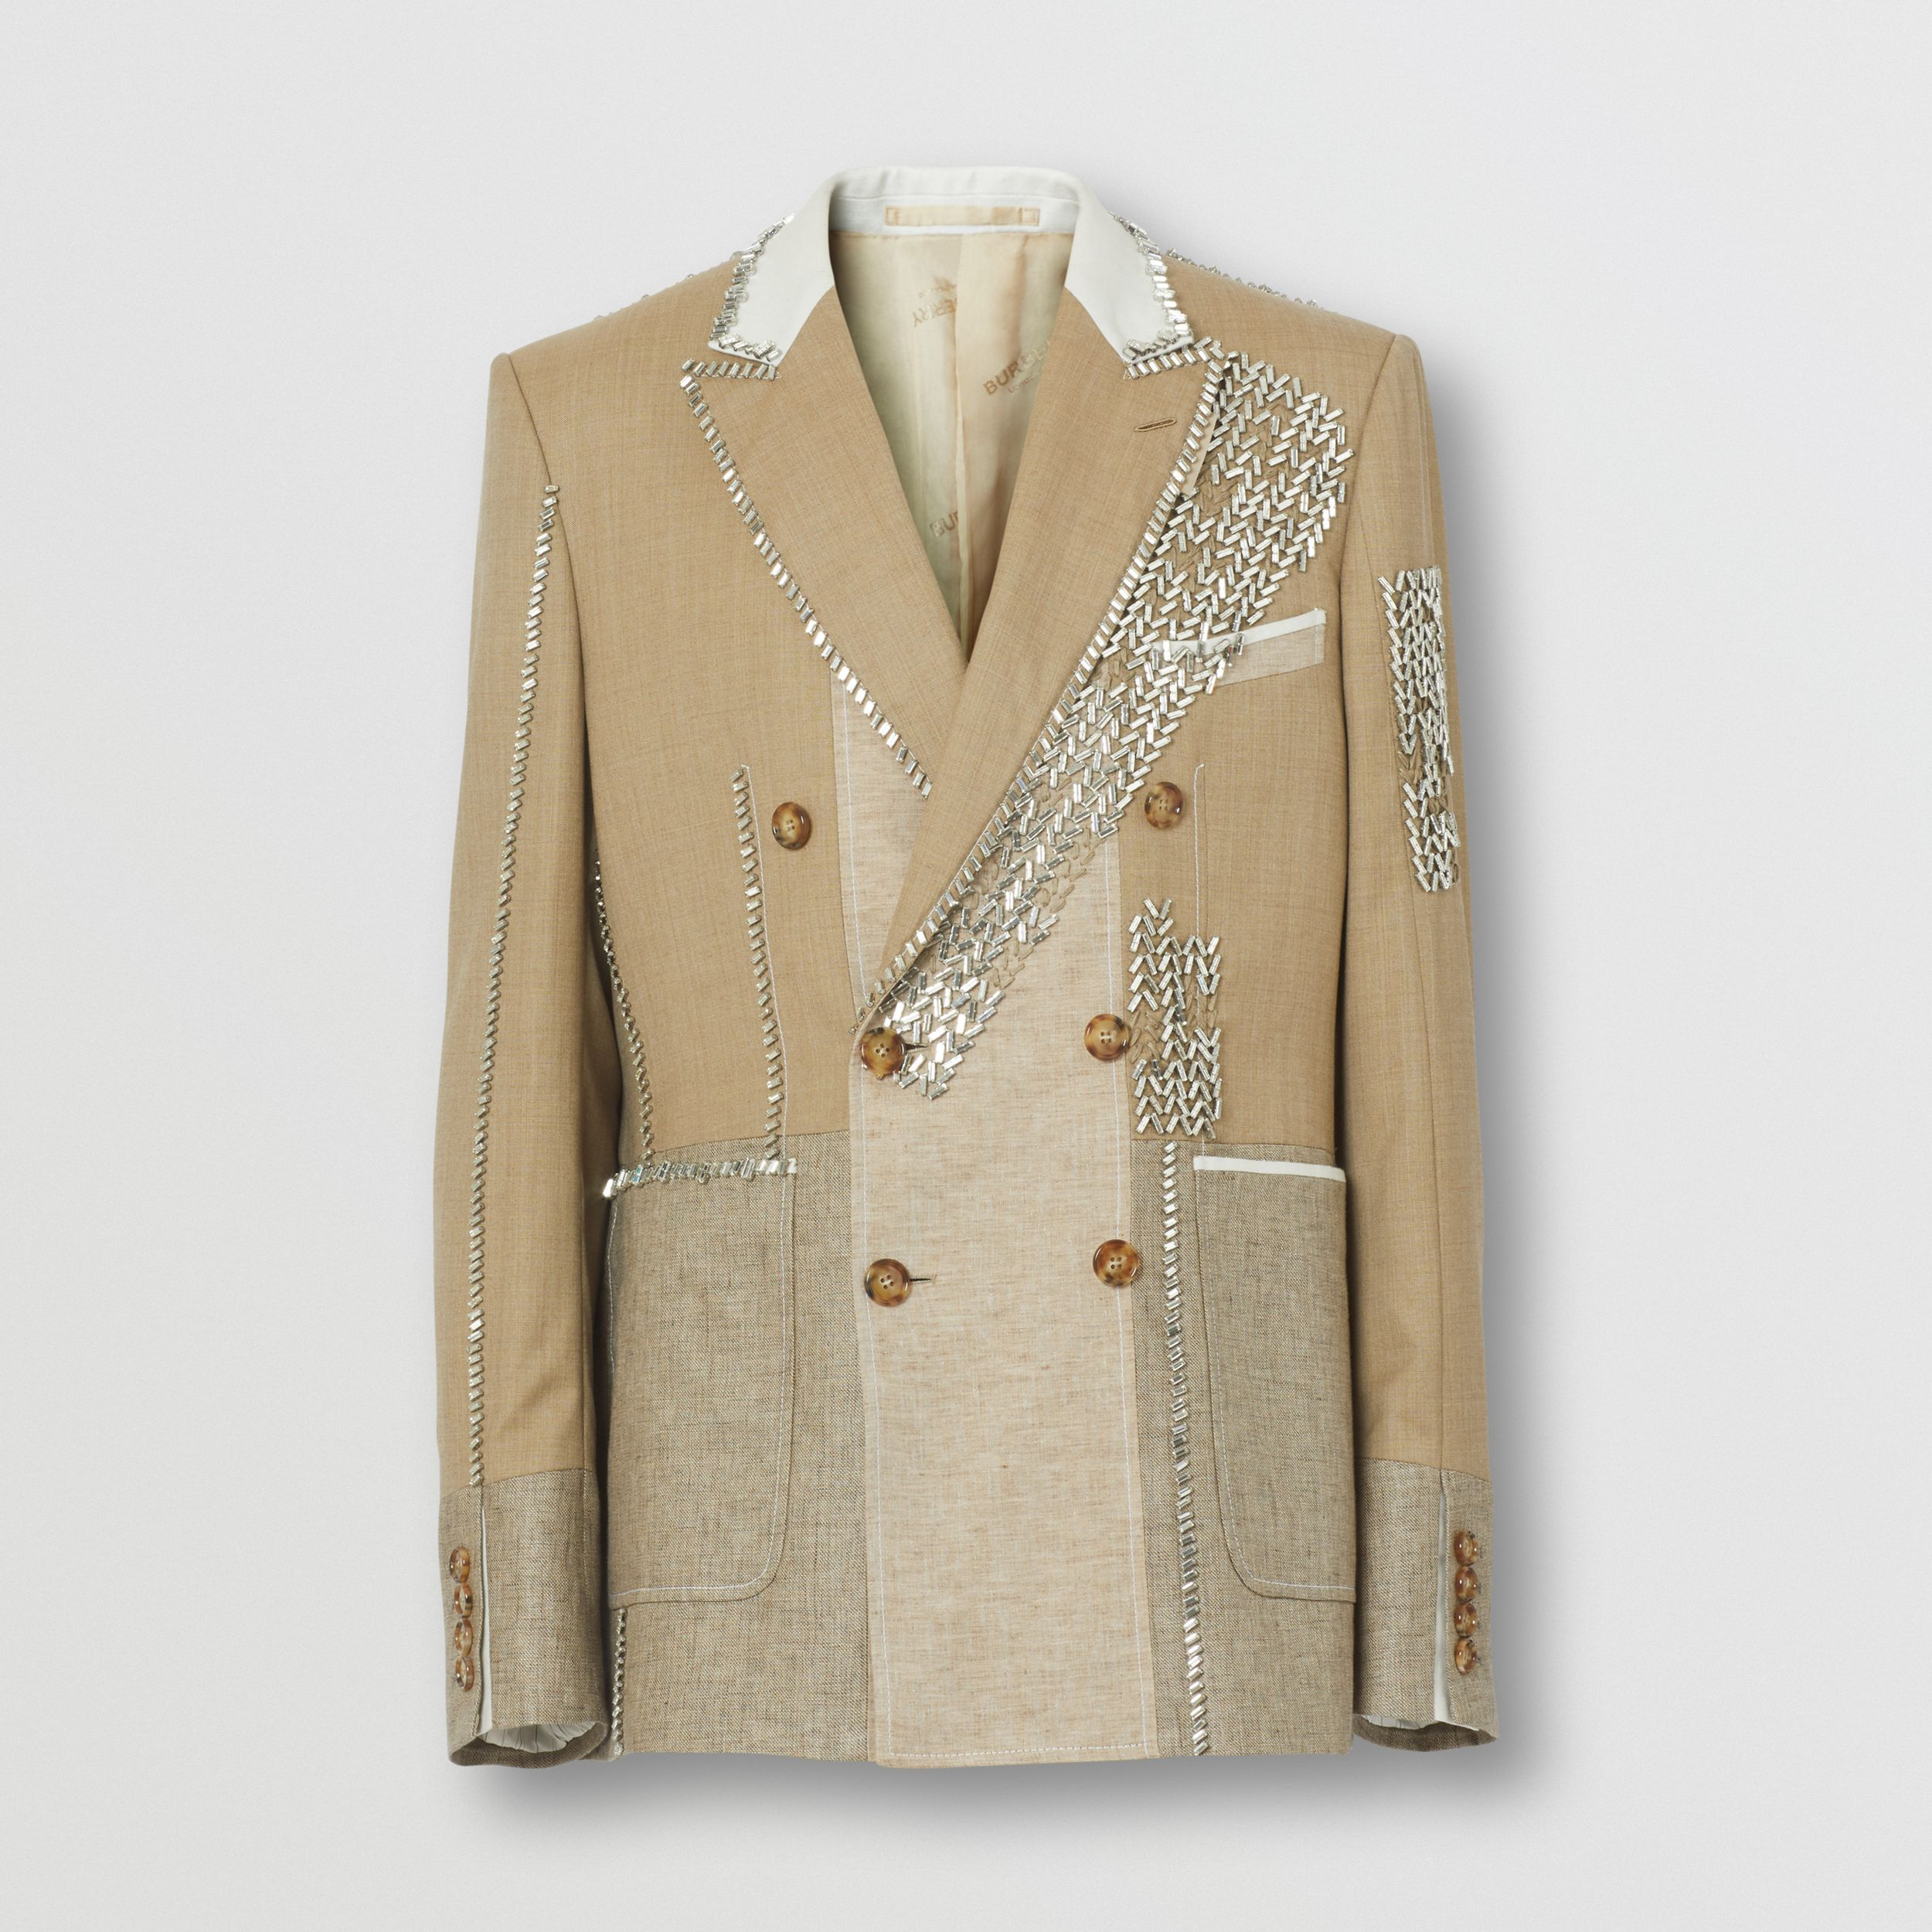 English Fit Crystal Embroidered Wool Cashmere Jacket in Pecan Melange - Men | Burberry - 4